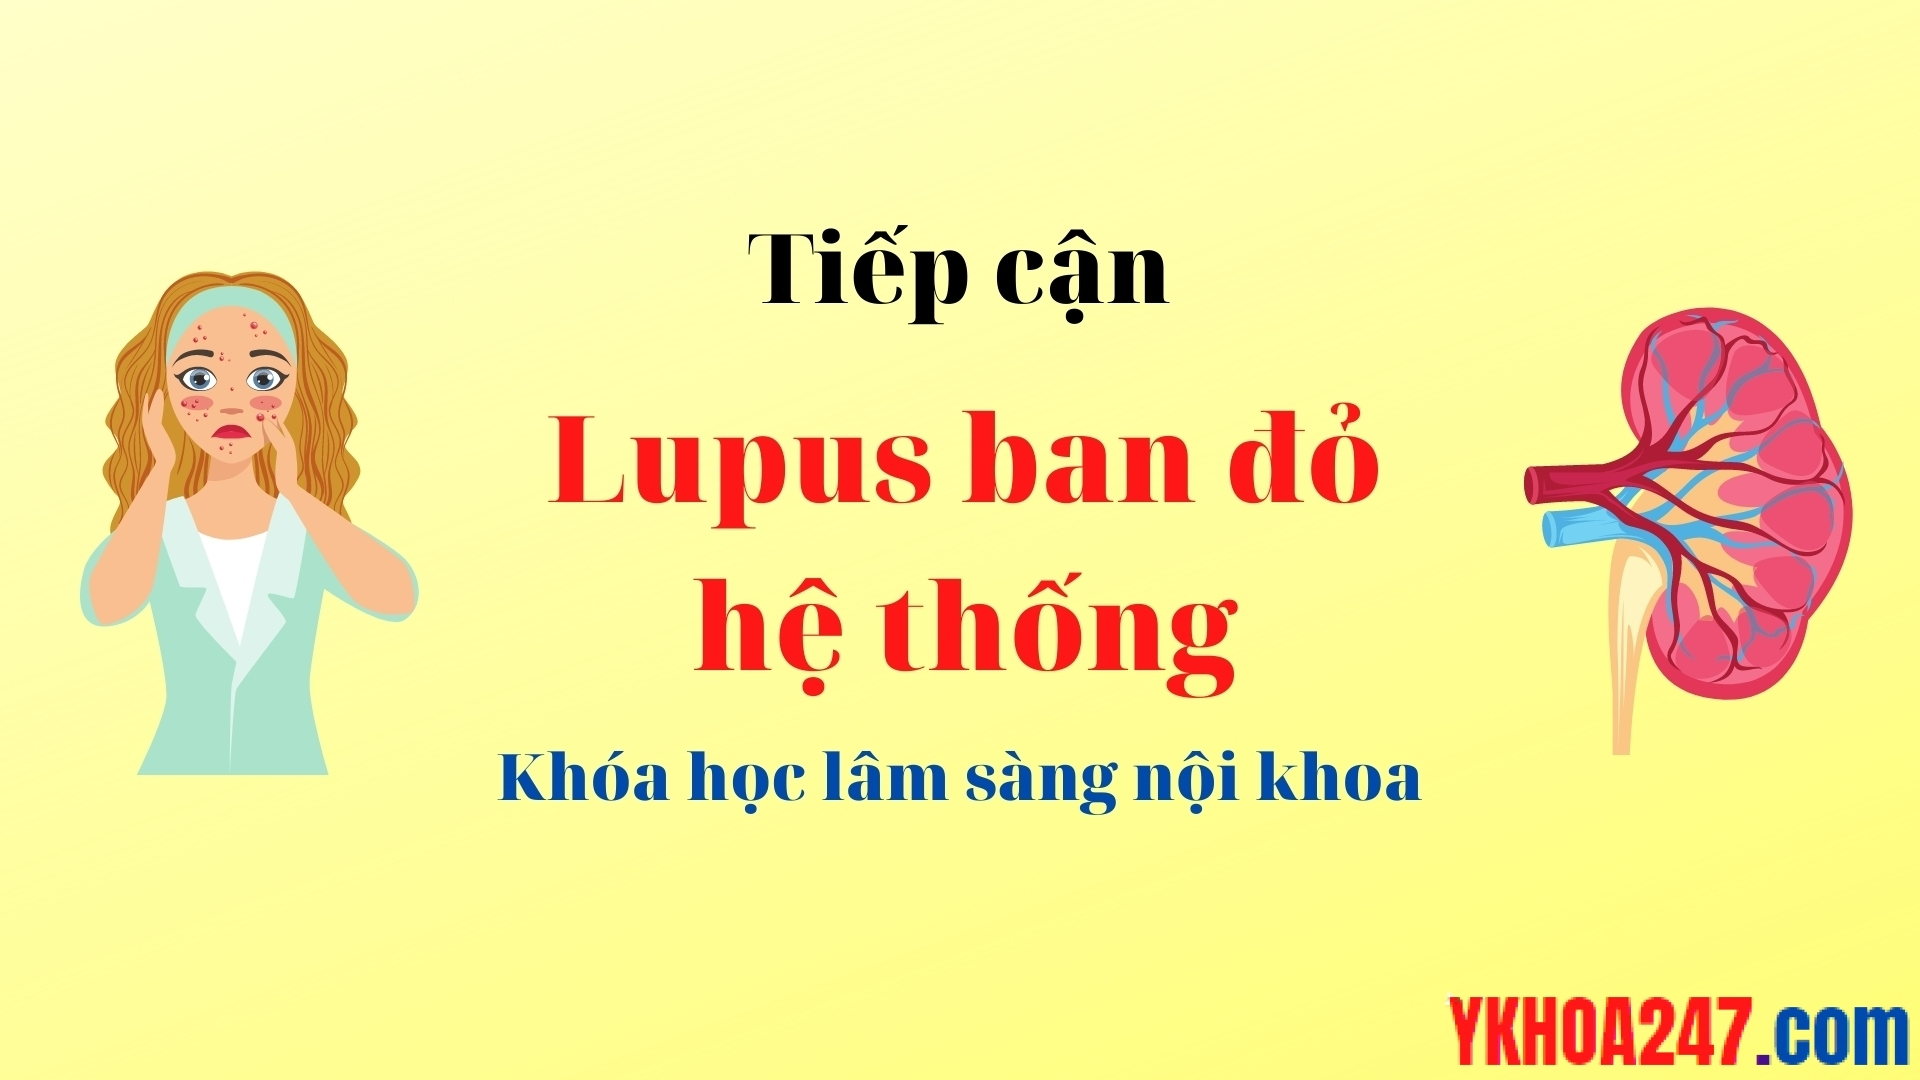 lupus ban do he thong